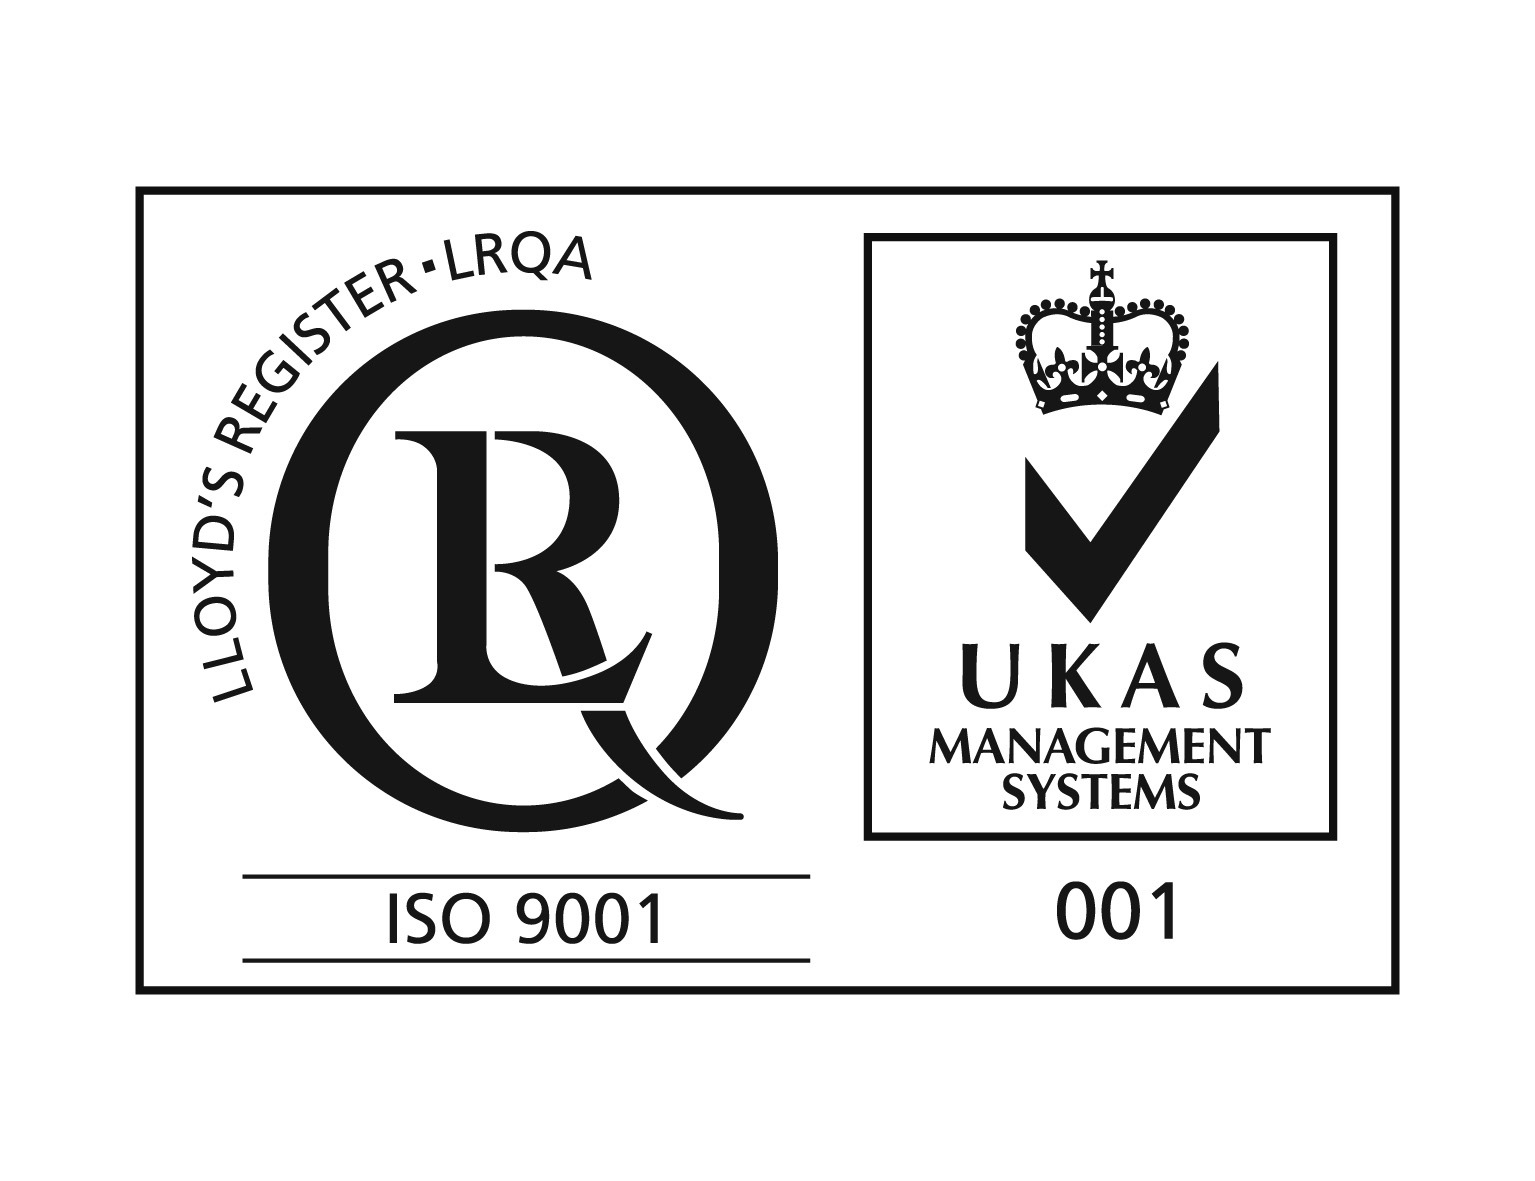 Logo ISO 9001 with UKAS